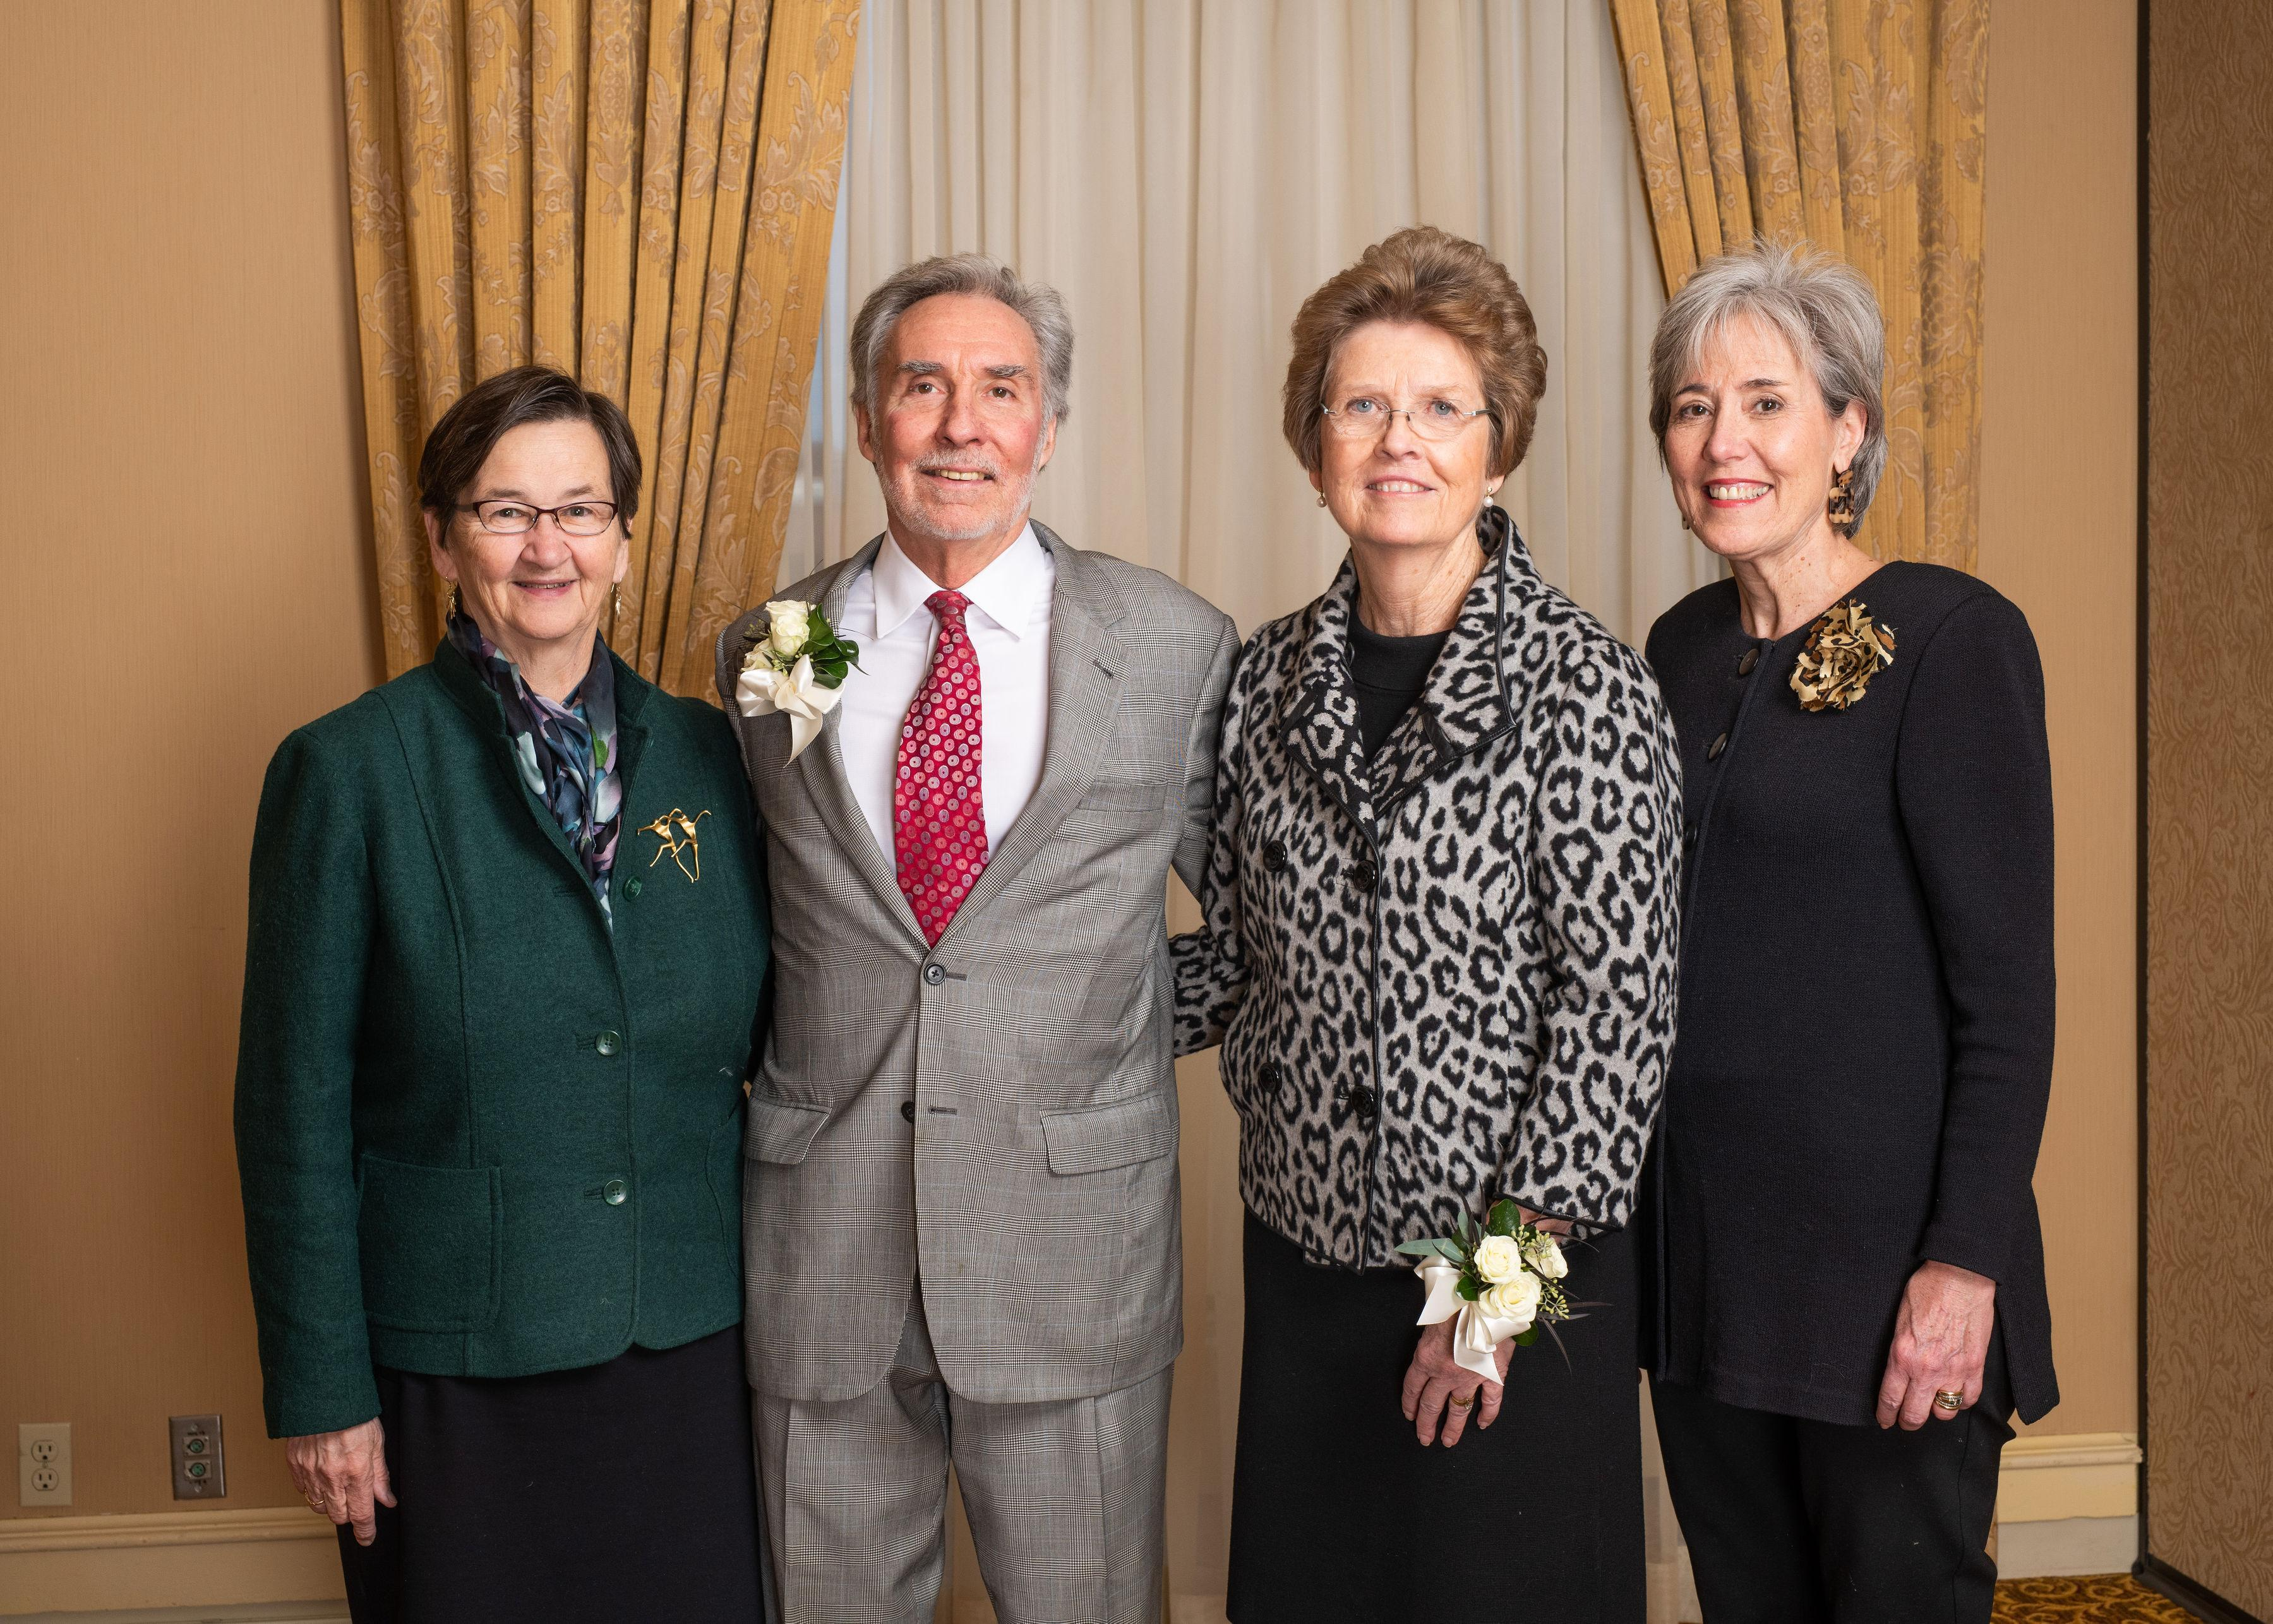 Joan & Peter Bruce with nominators from Greater Milwaukee Foundation and Alverno College